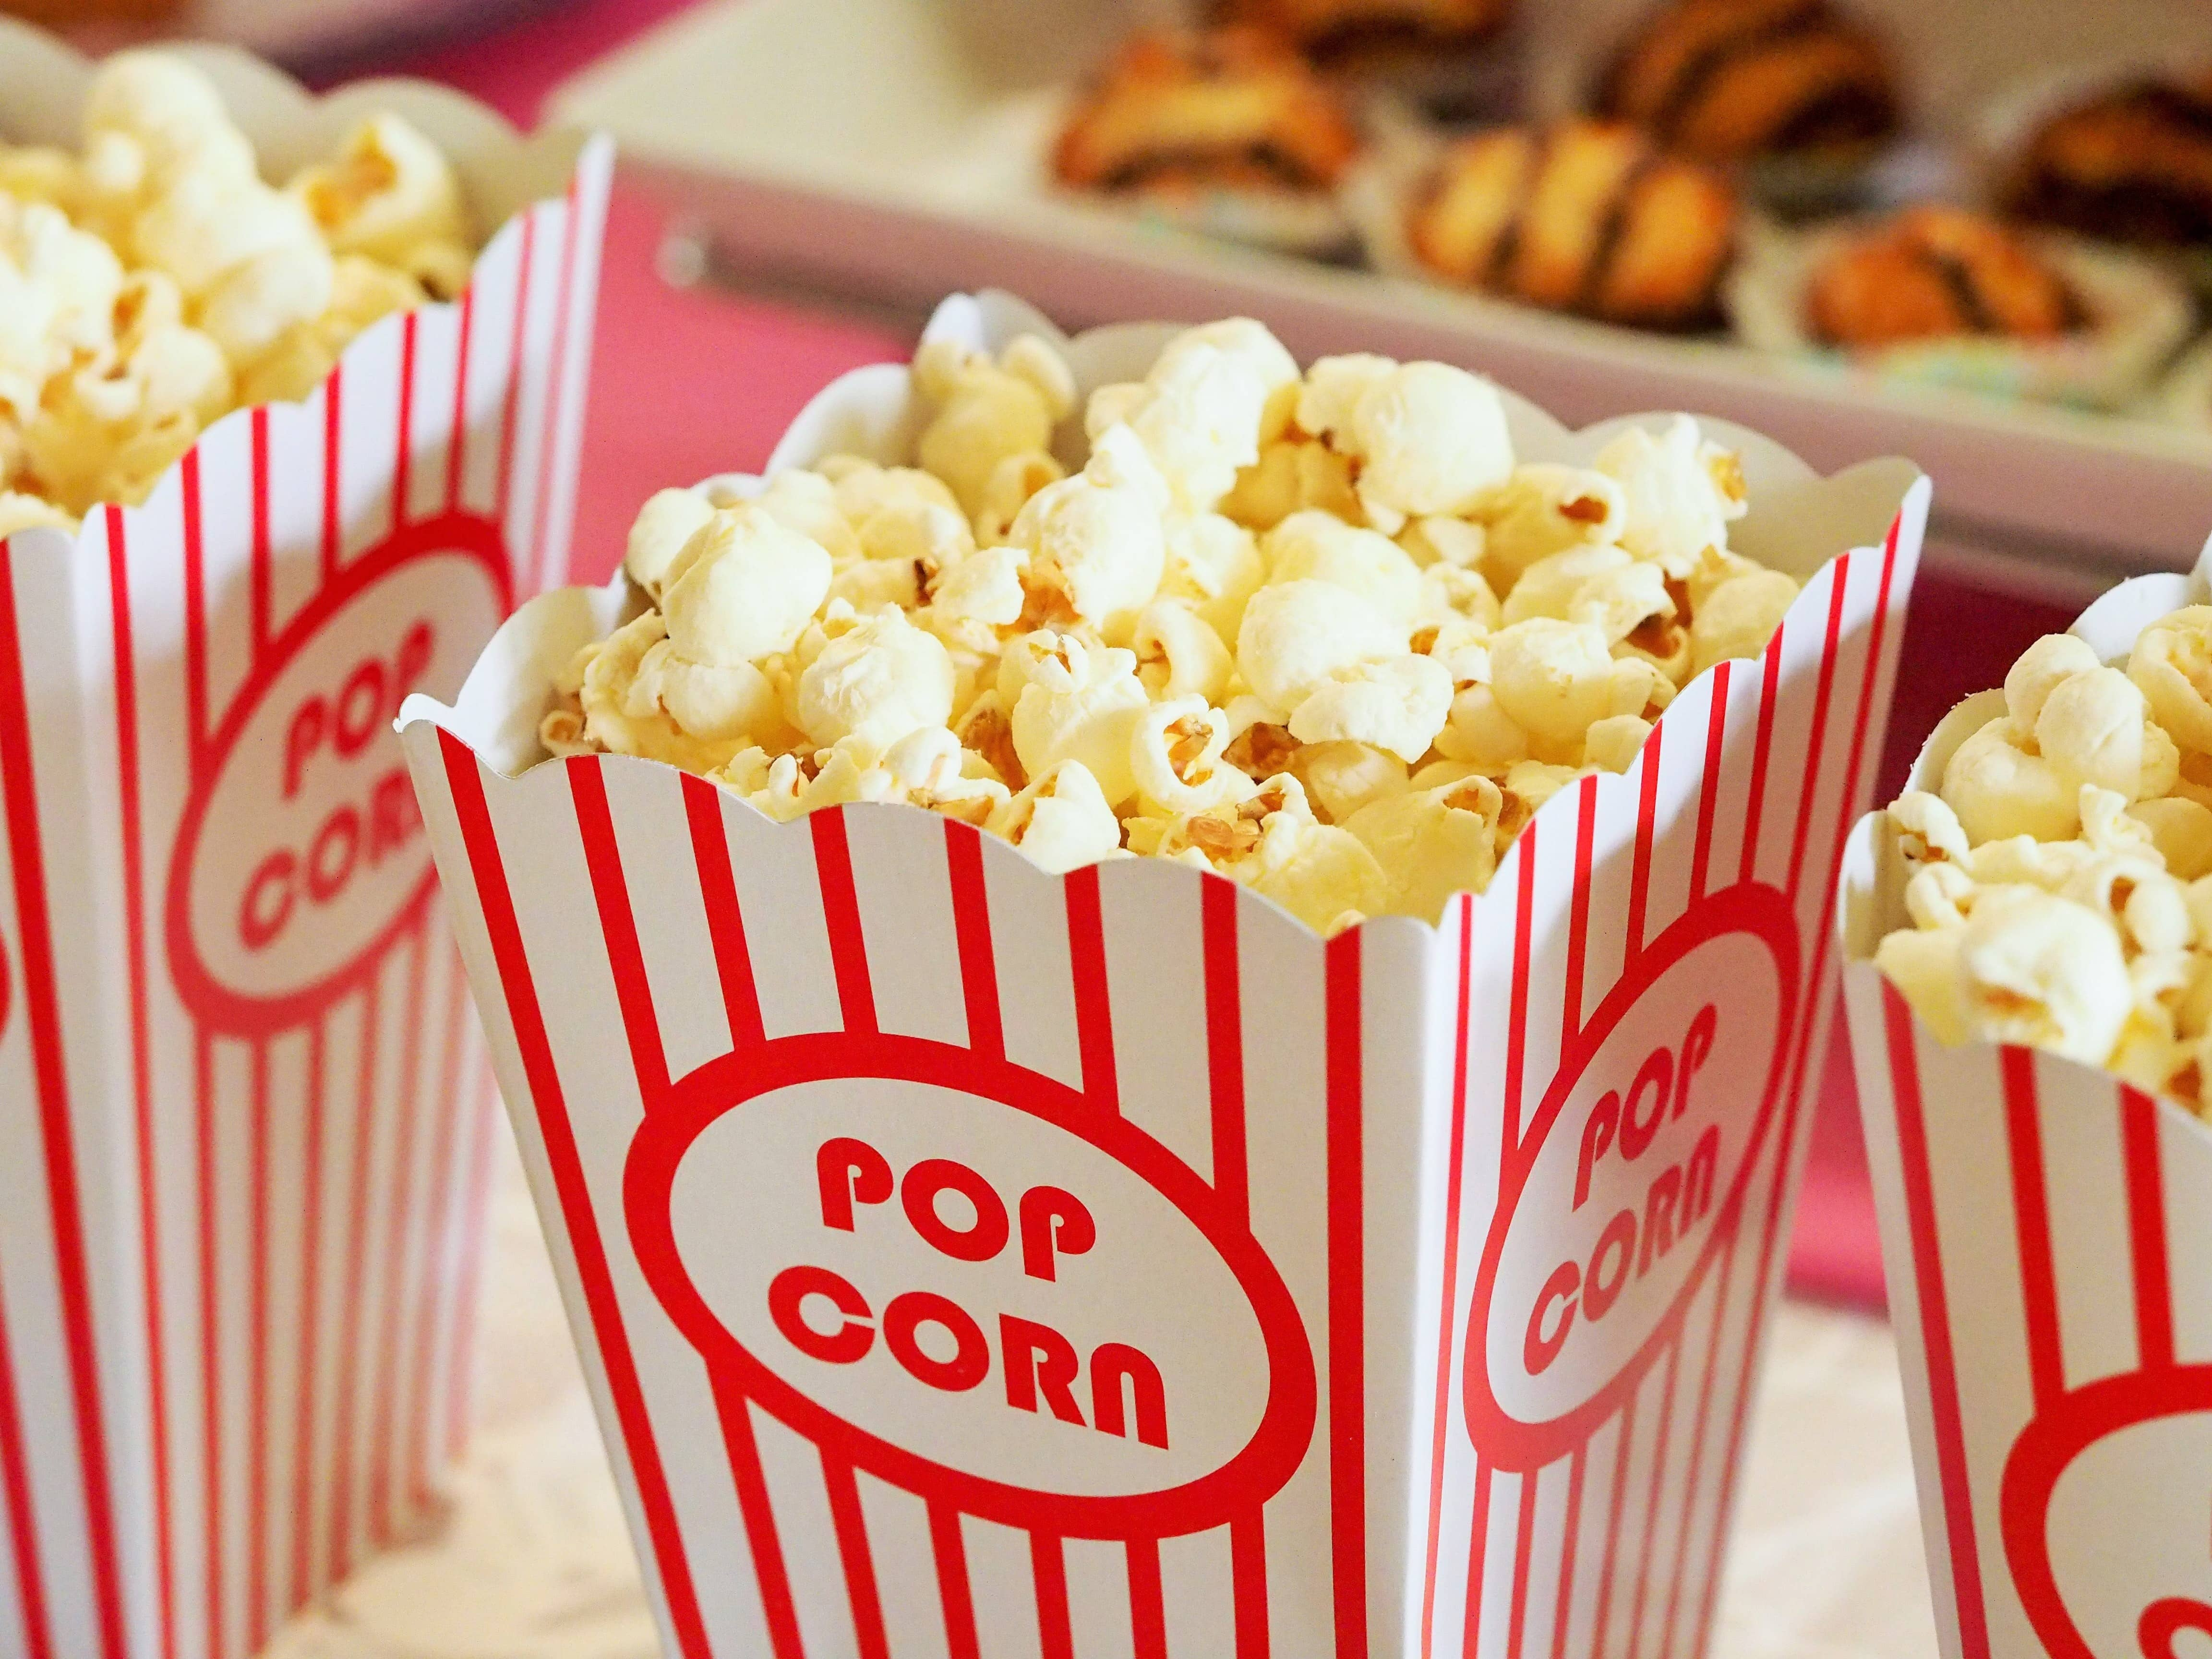 A red and white striped popcorn box filled with popcorn